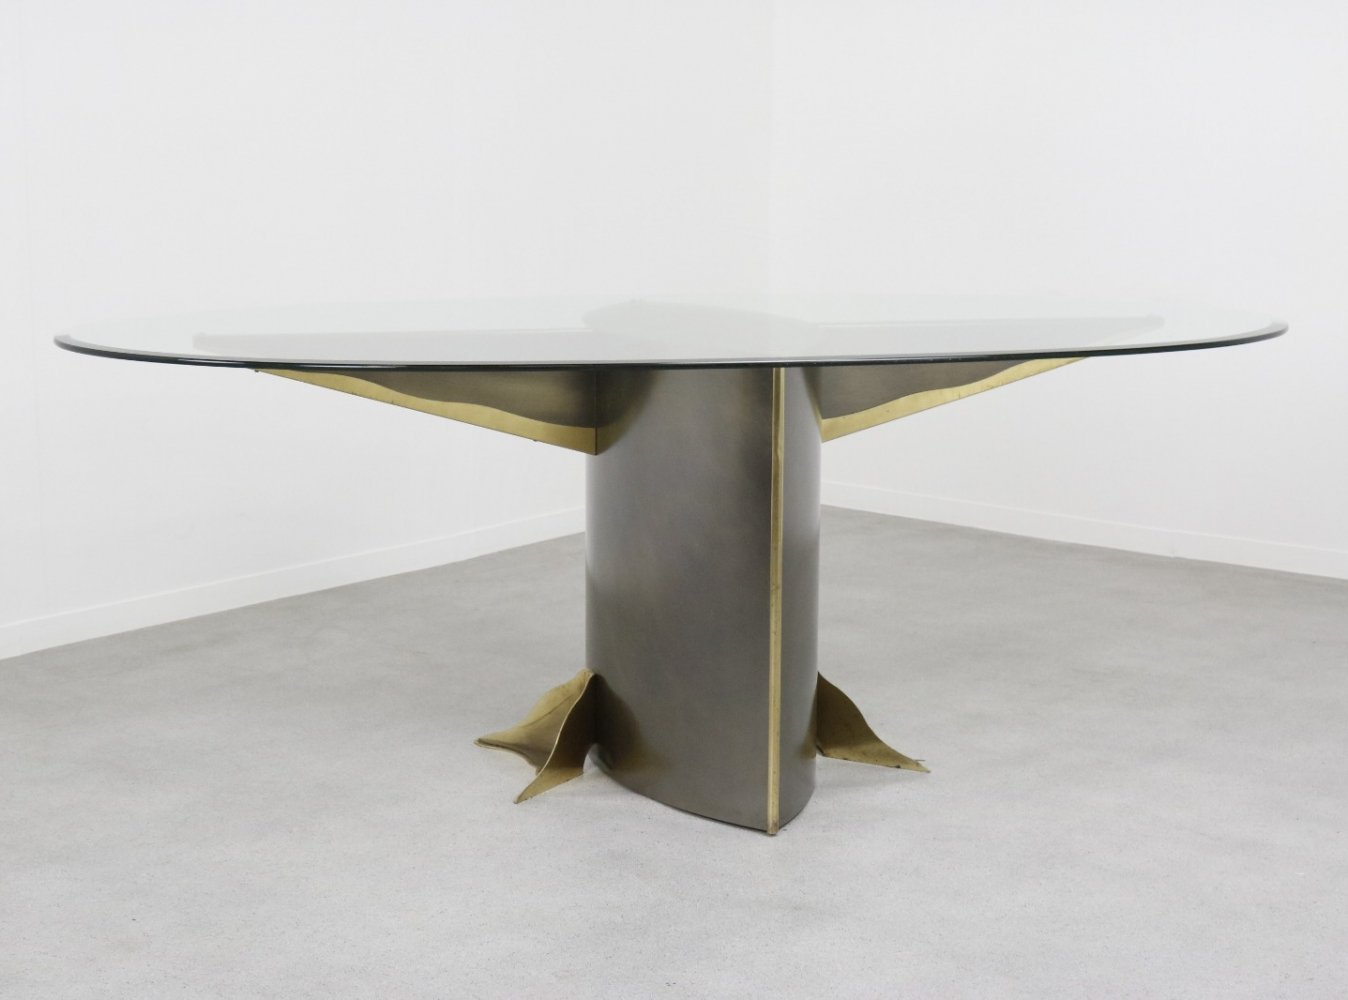 Large oval Hollywood regency style dining table by Belgo Chrom, 1970s